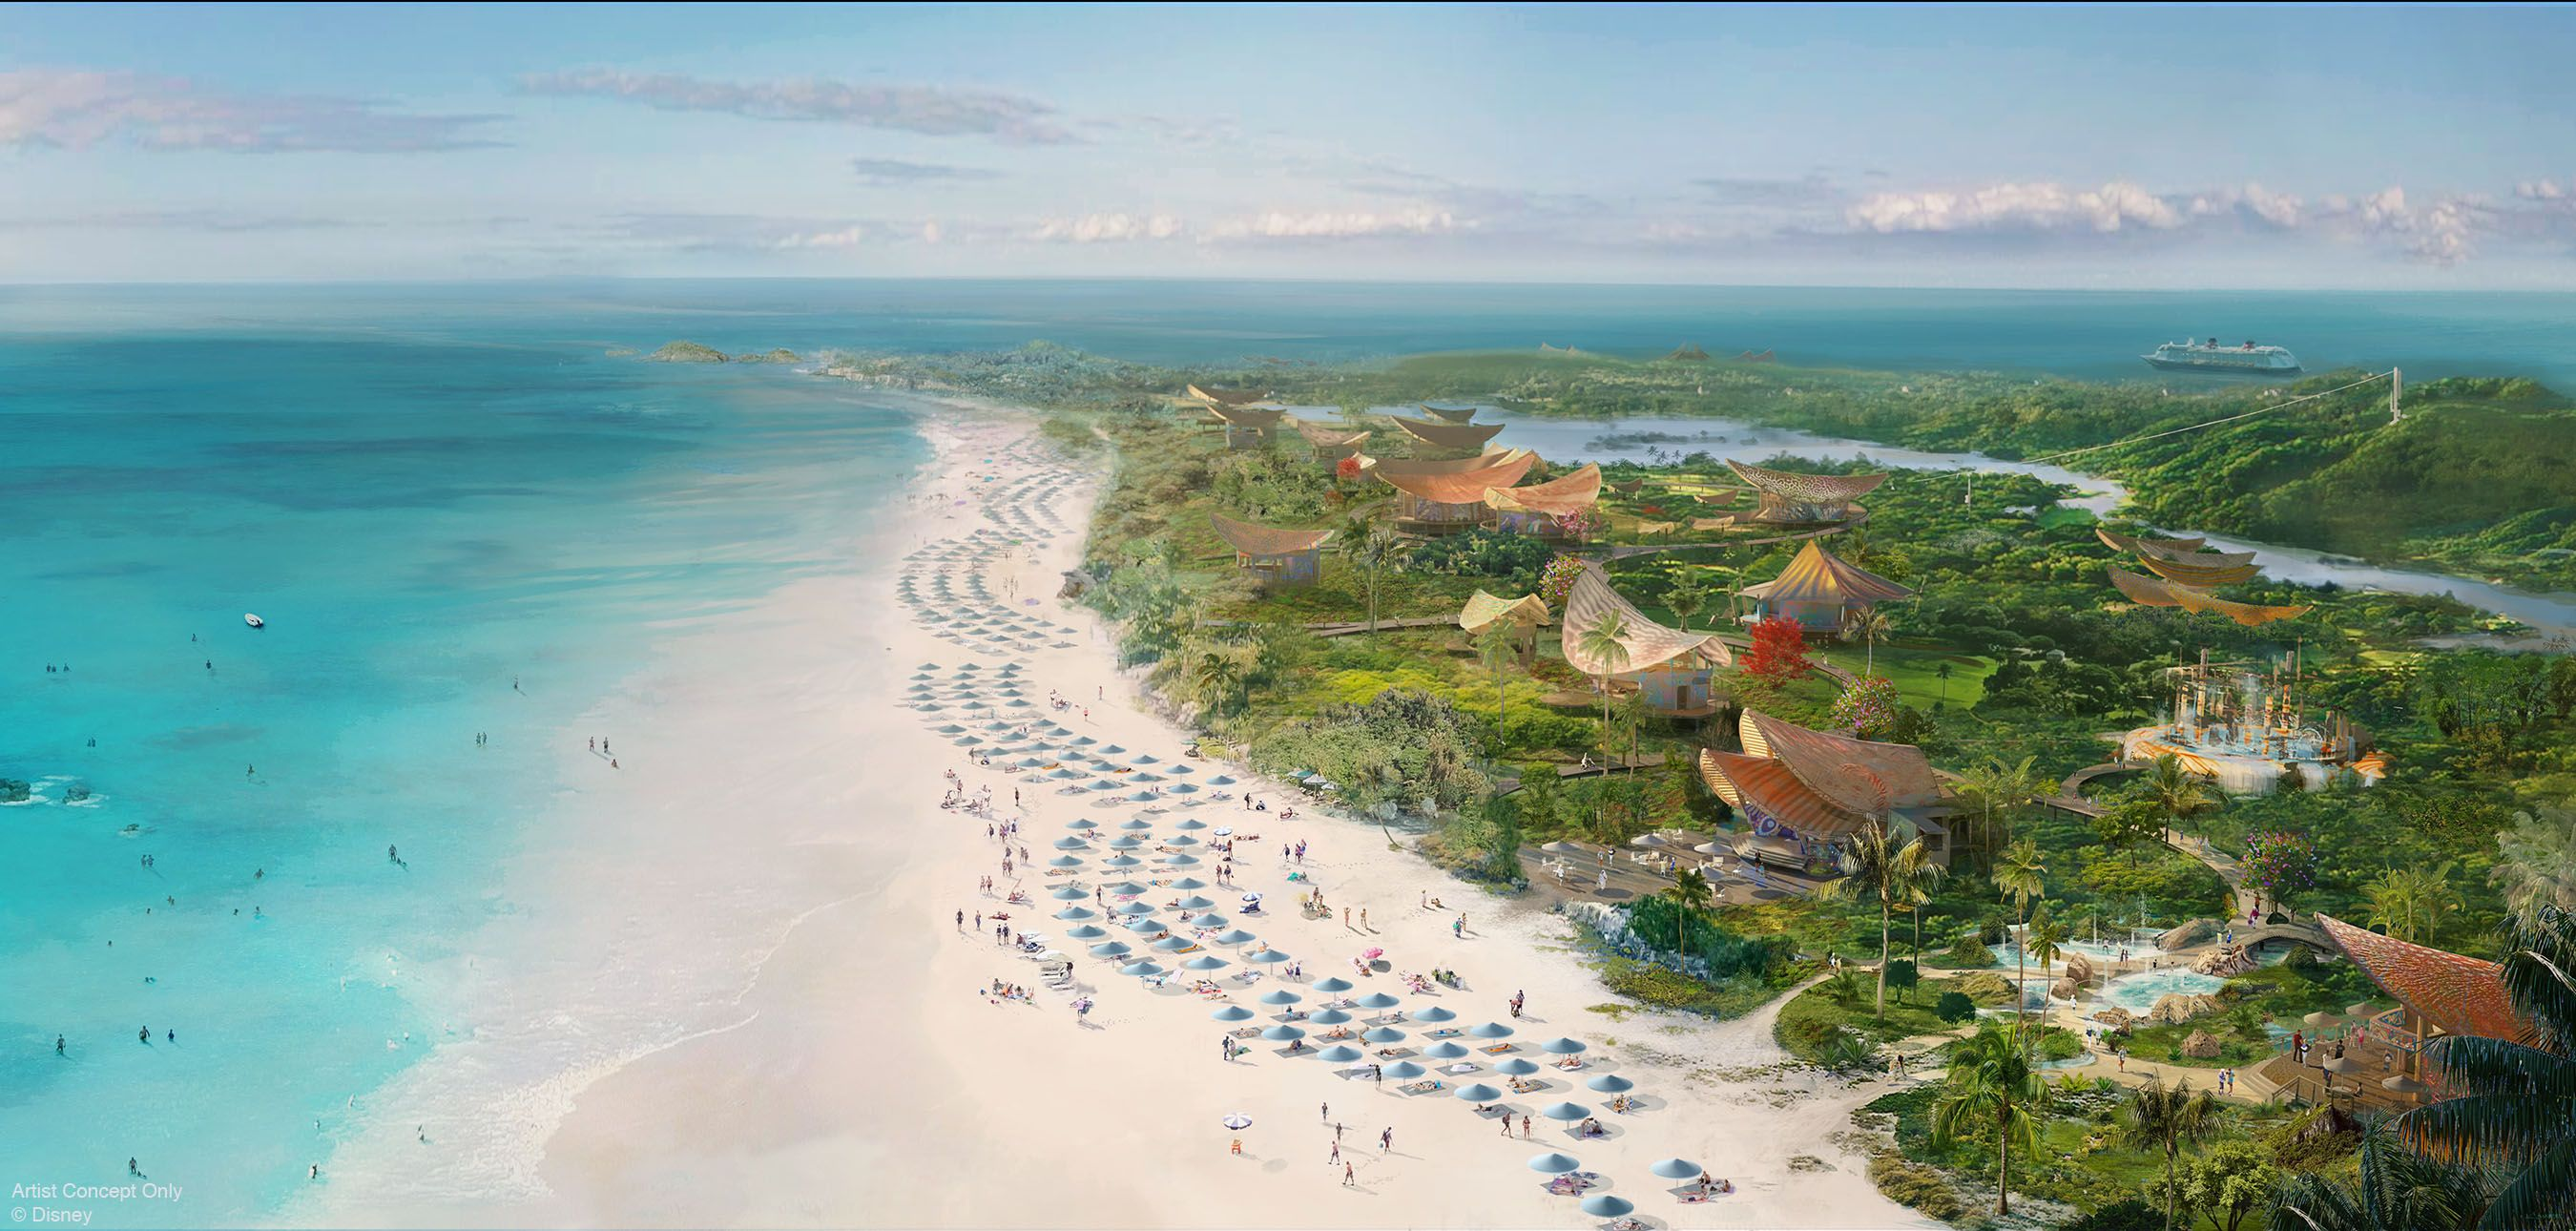 Disney Is Building a Resort on a Private Island in The Bahamas, and We Can't Wait to Visit